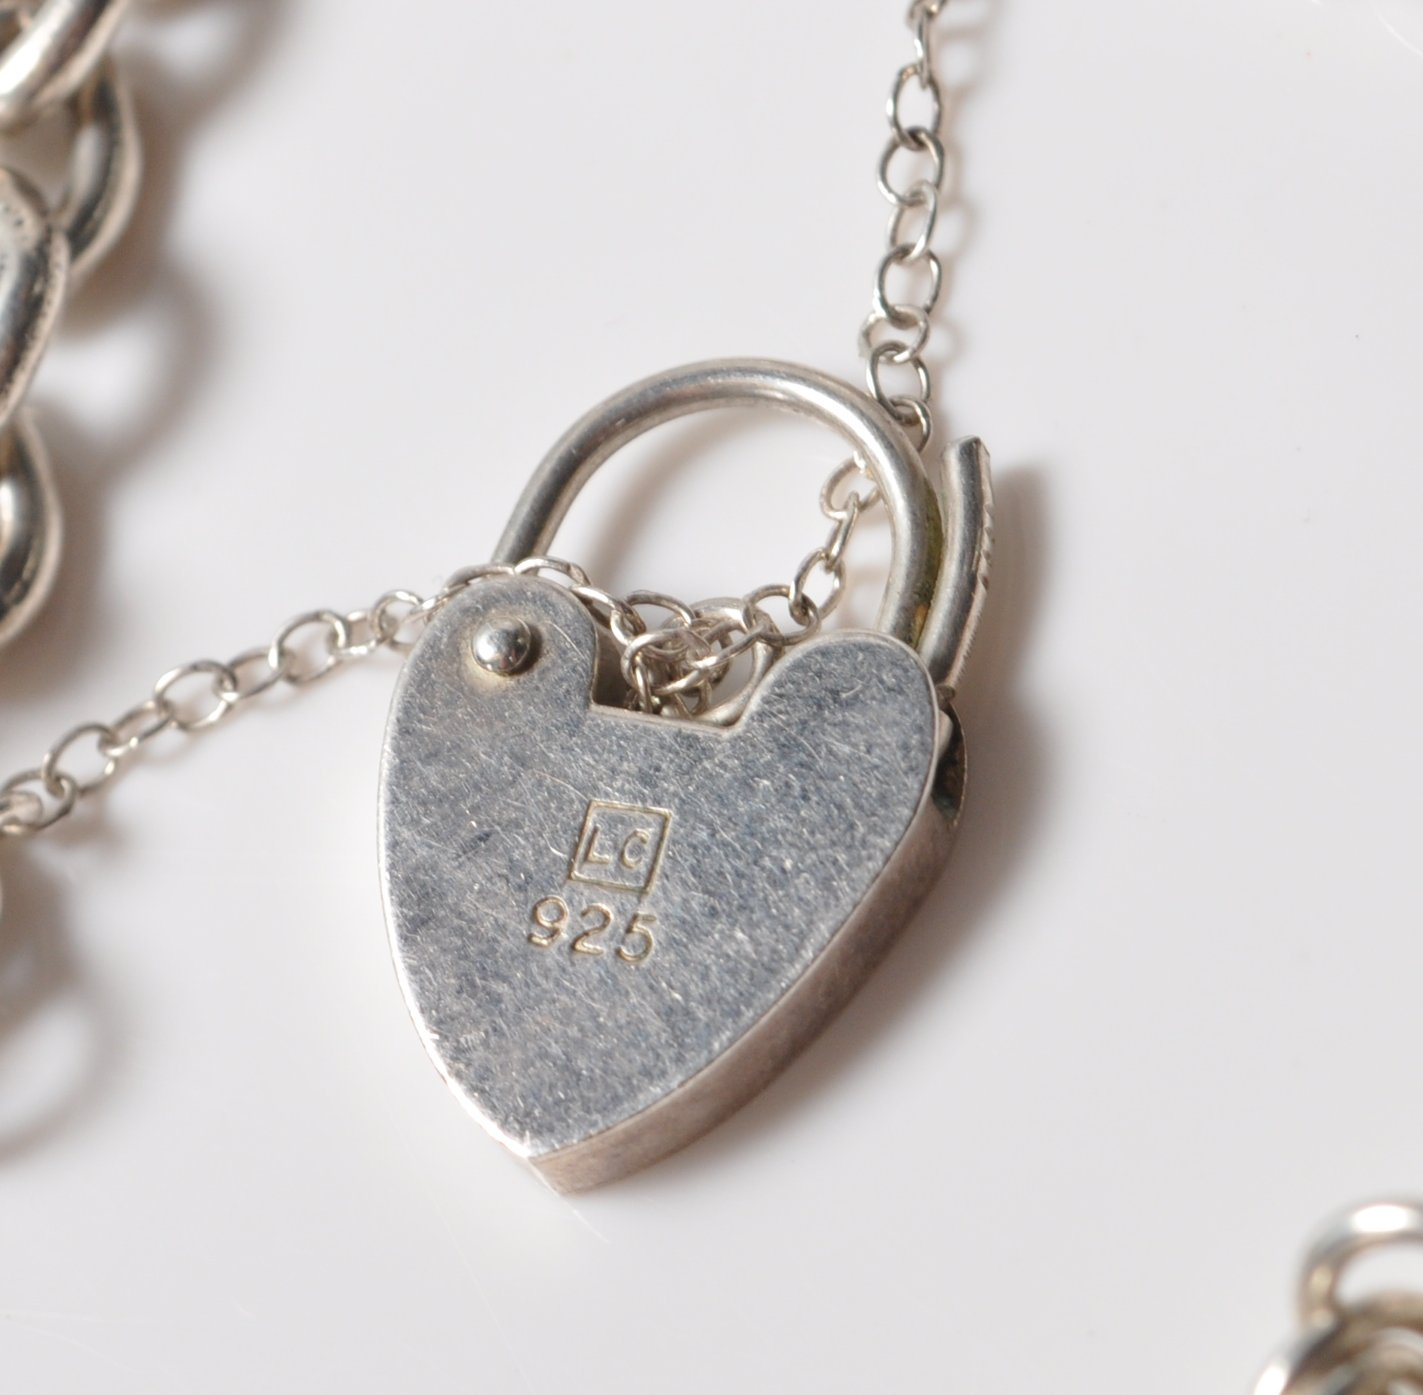 SILVER STAMPED 925 CHARM BRACELET. TOTAL WEIGHT 64 GRAMS. - Image 7 of 8